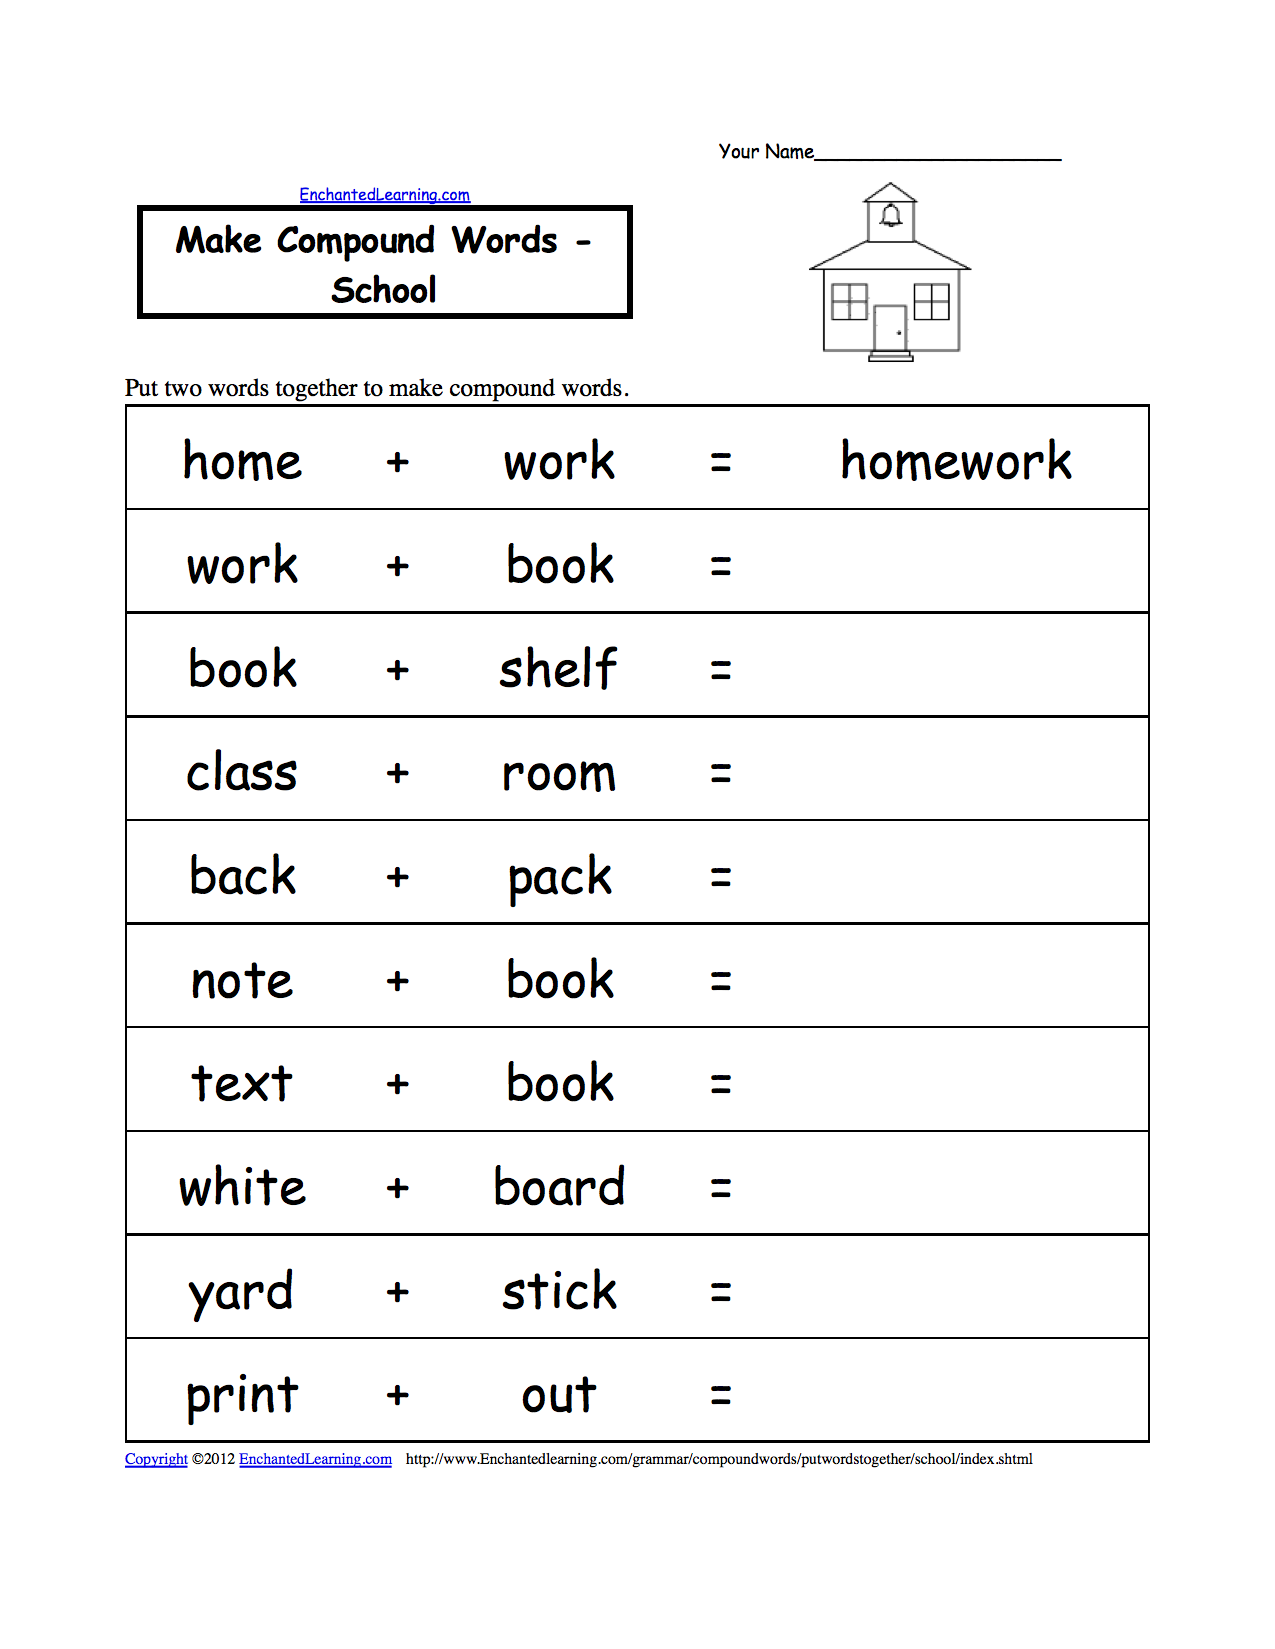 Printables Compound Words Worksheets make compound words printable worksheets enchantedlearning com words